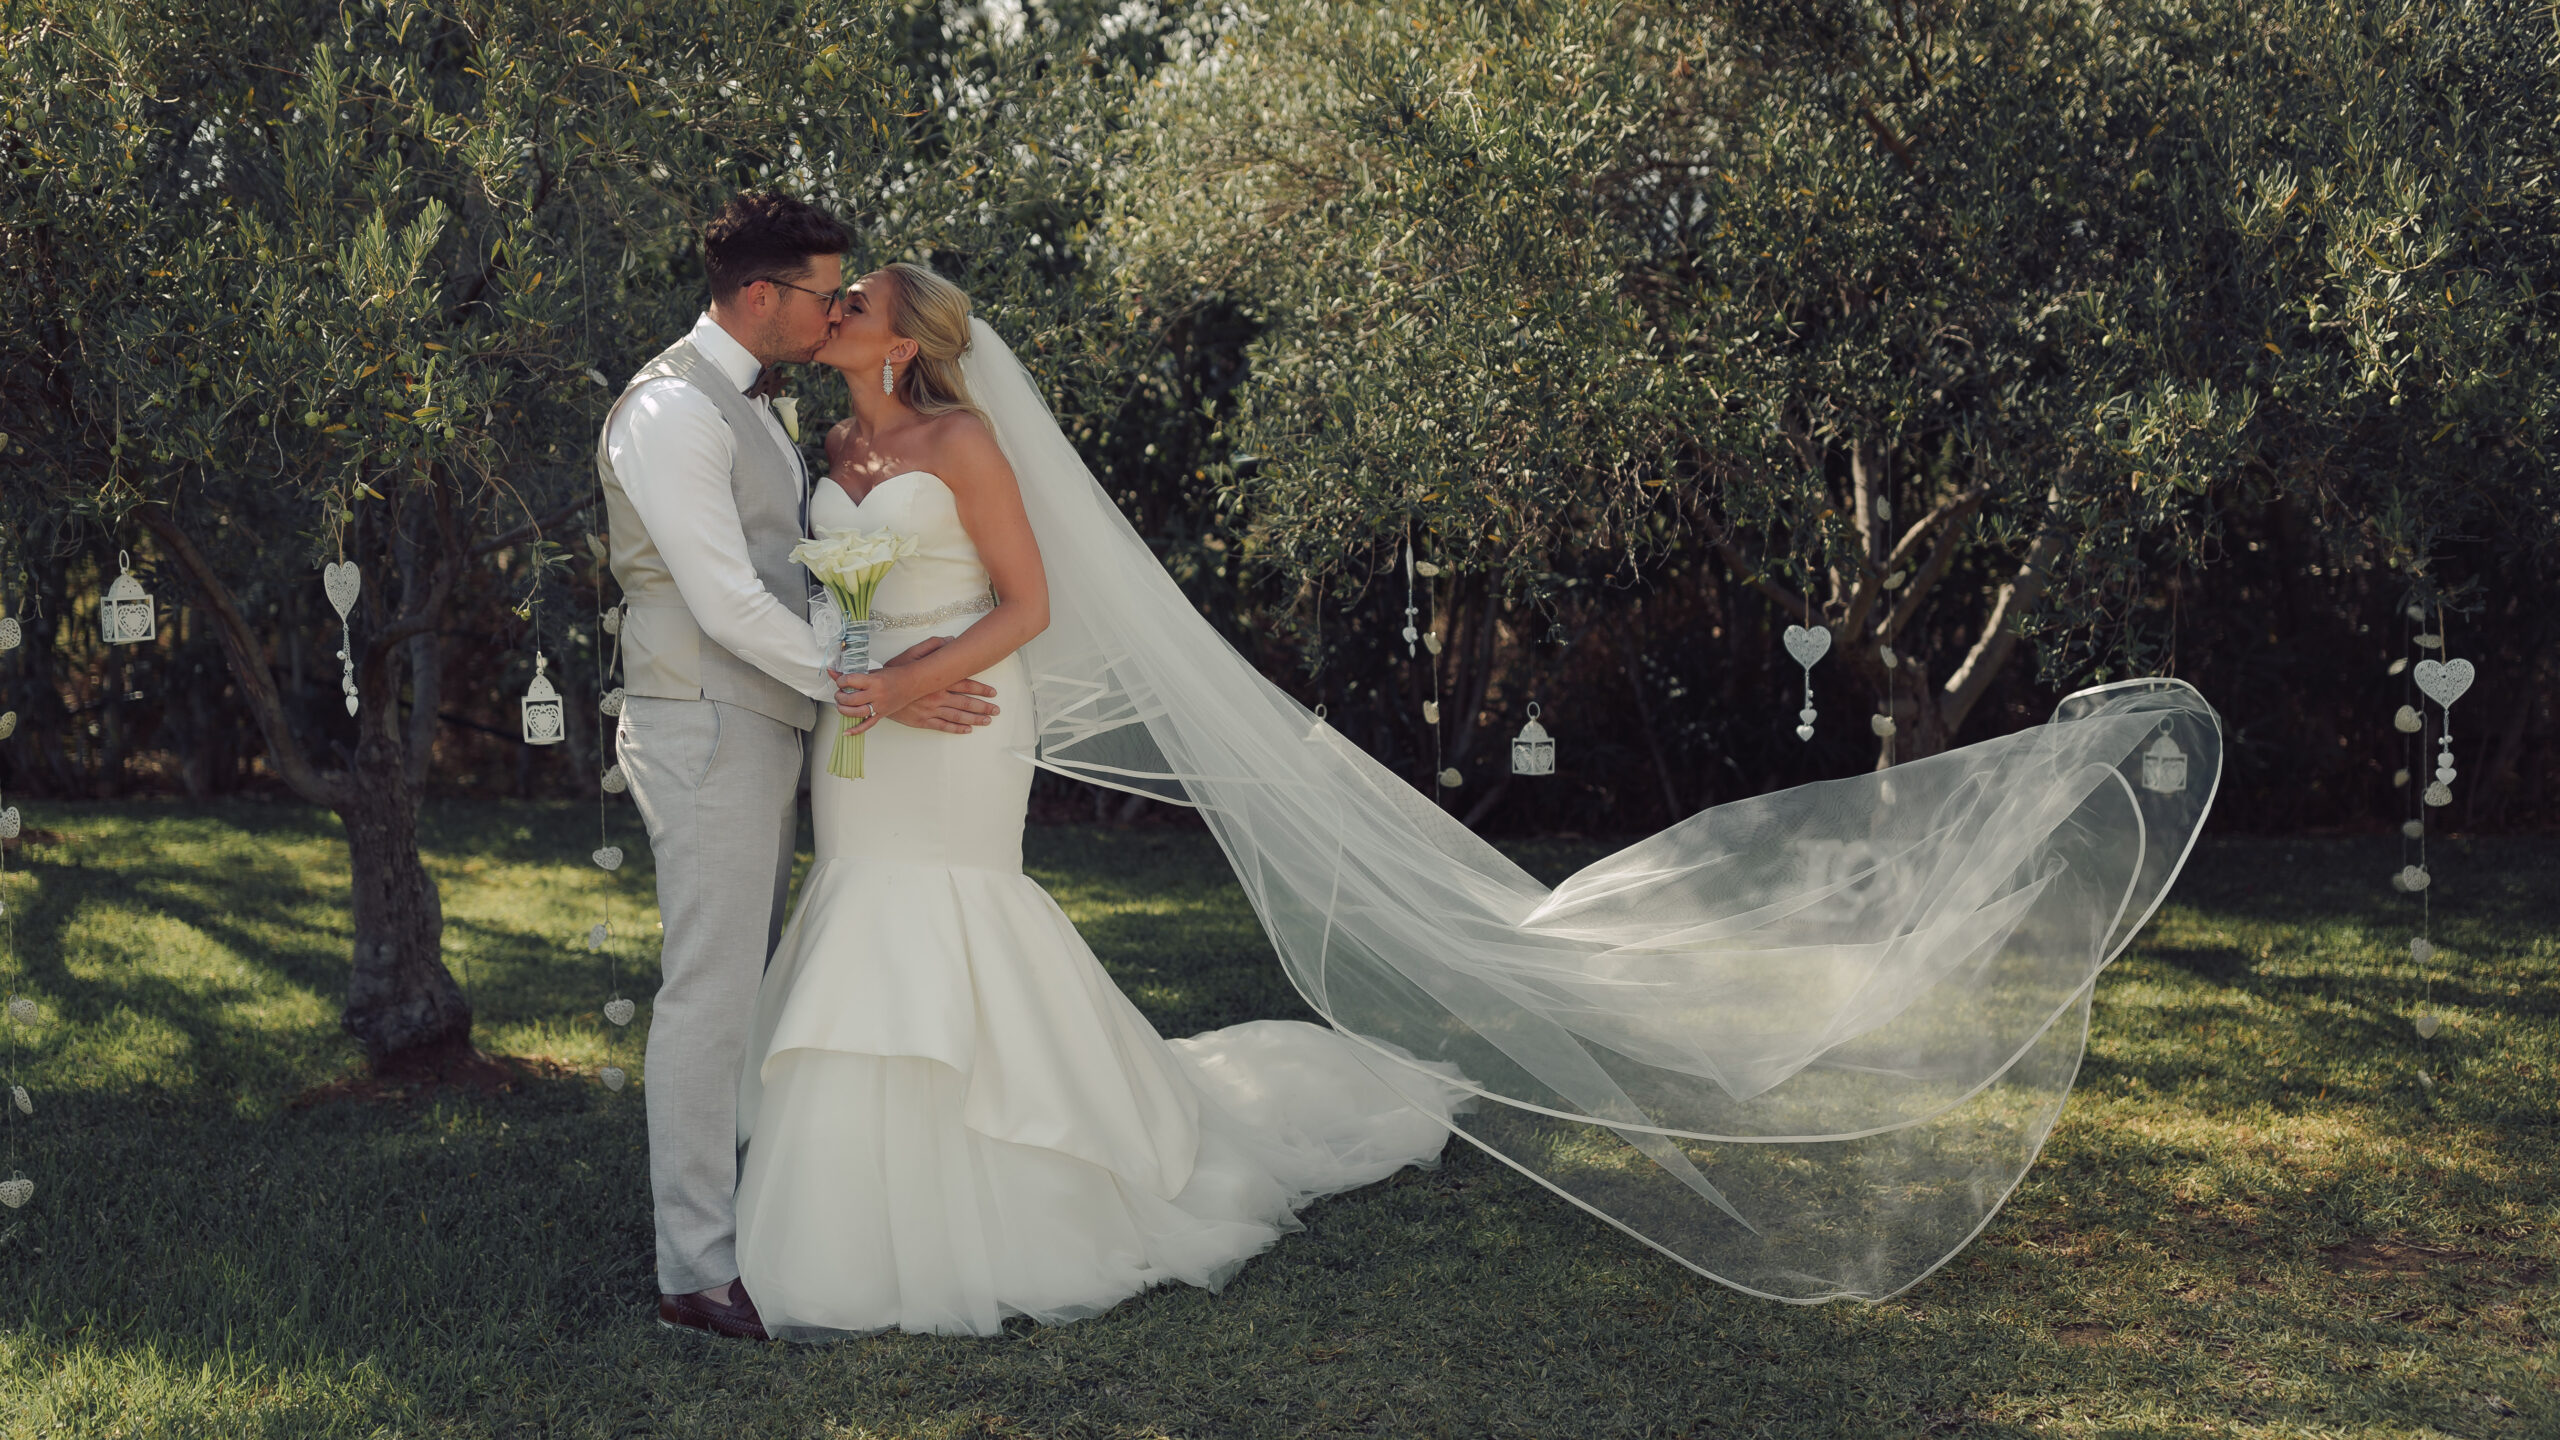 The bride and groom share a kiss in the grounds of the Hacienda - Hove & Co Photography